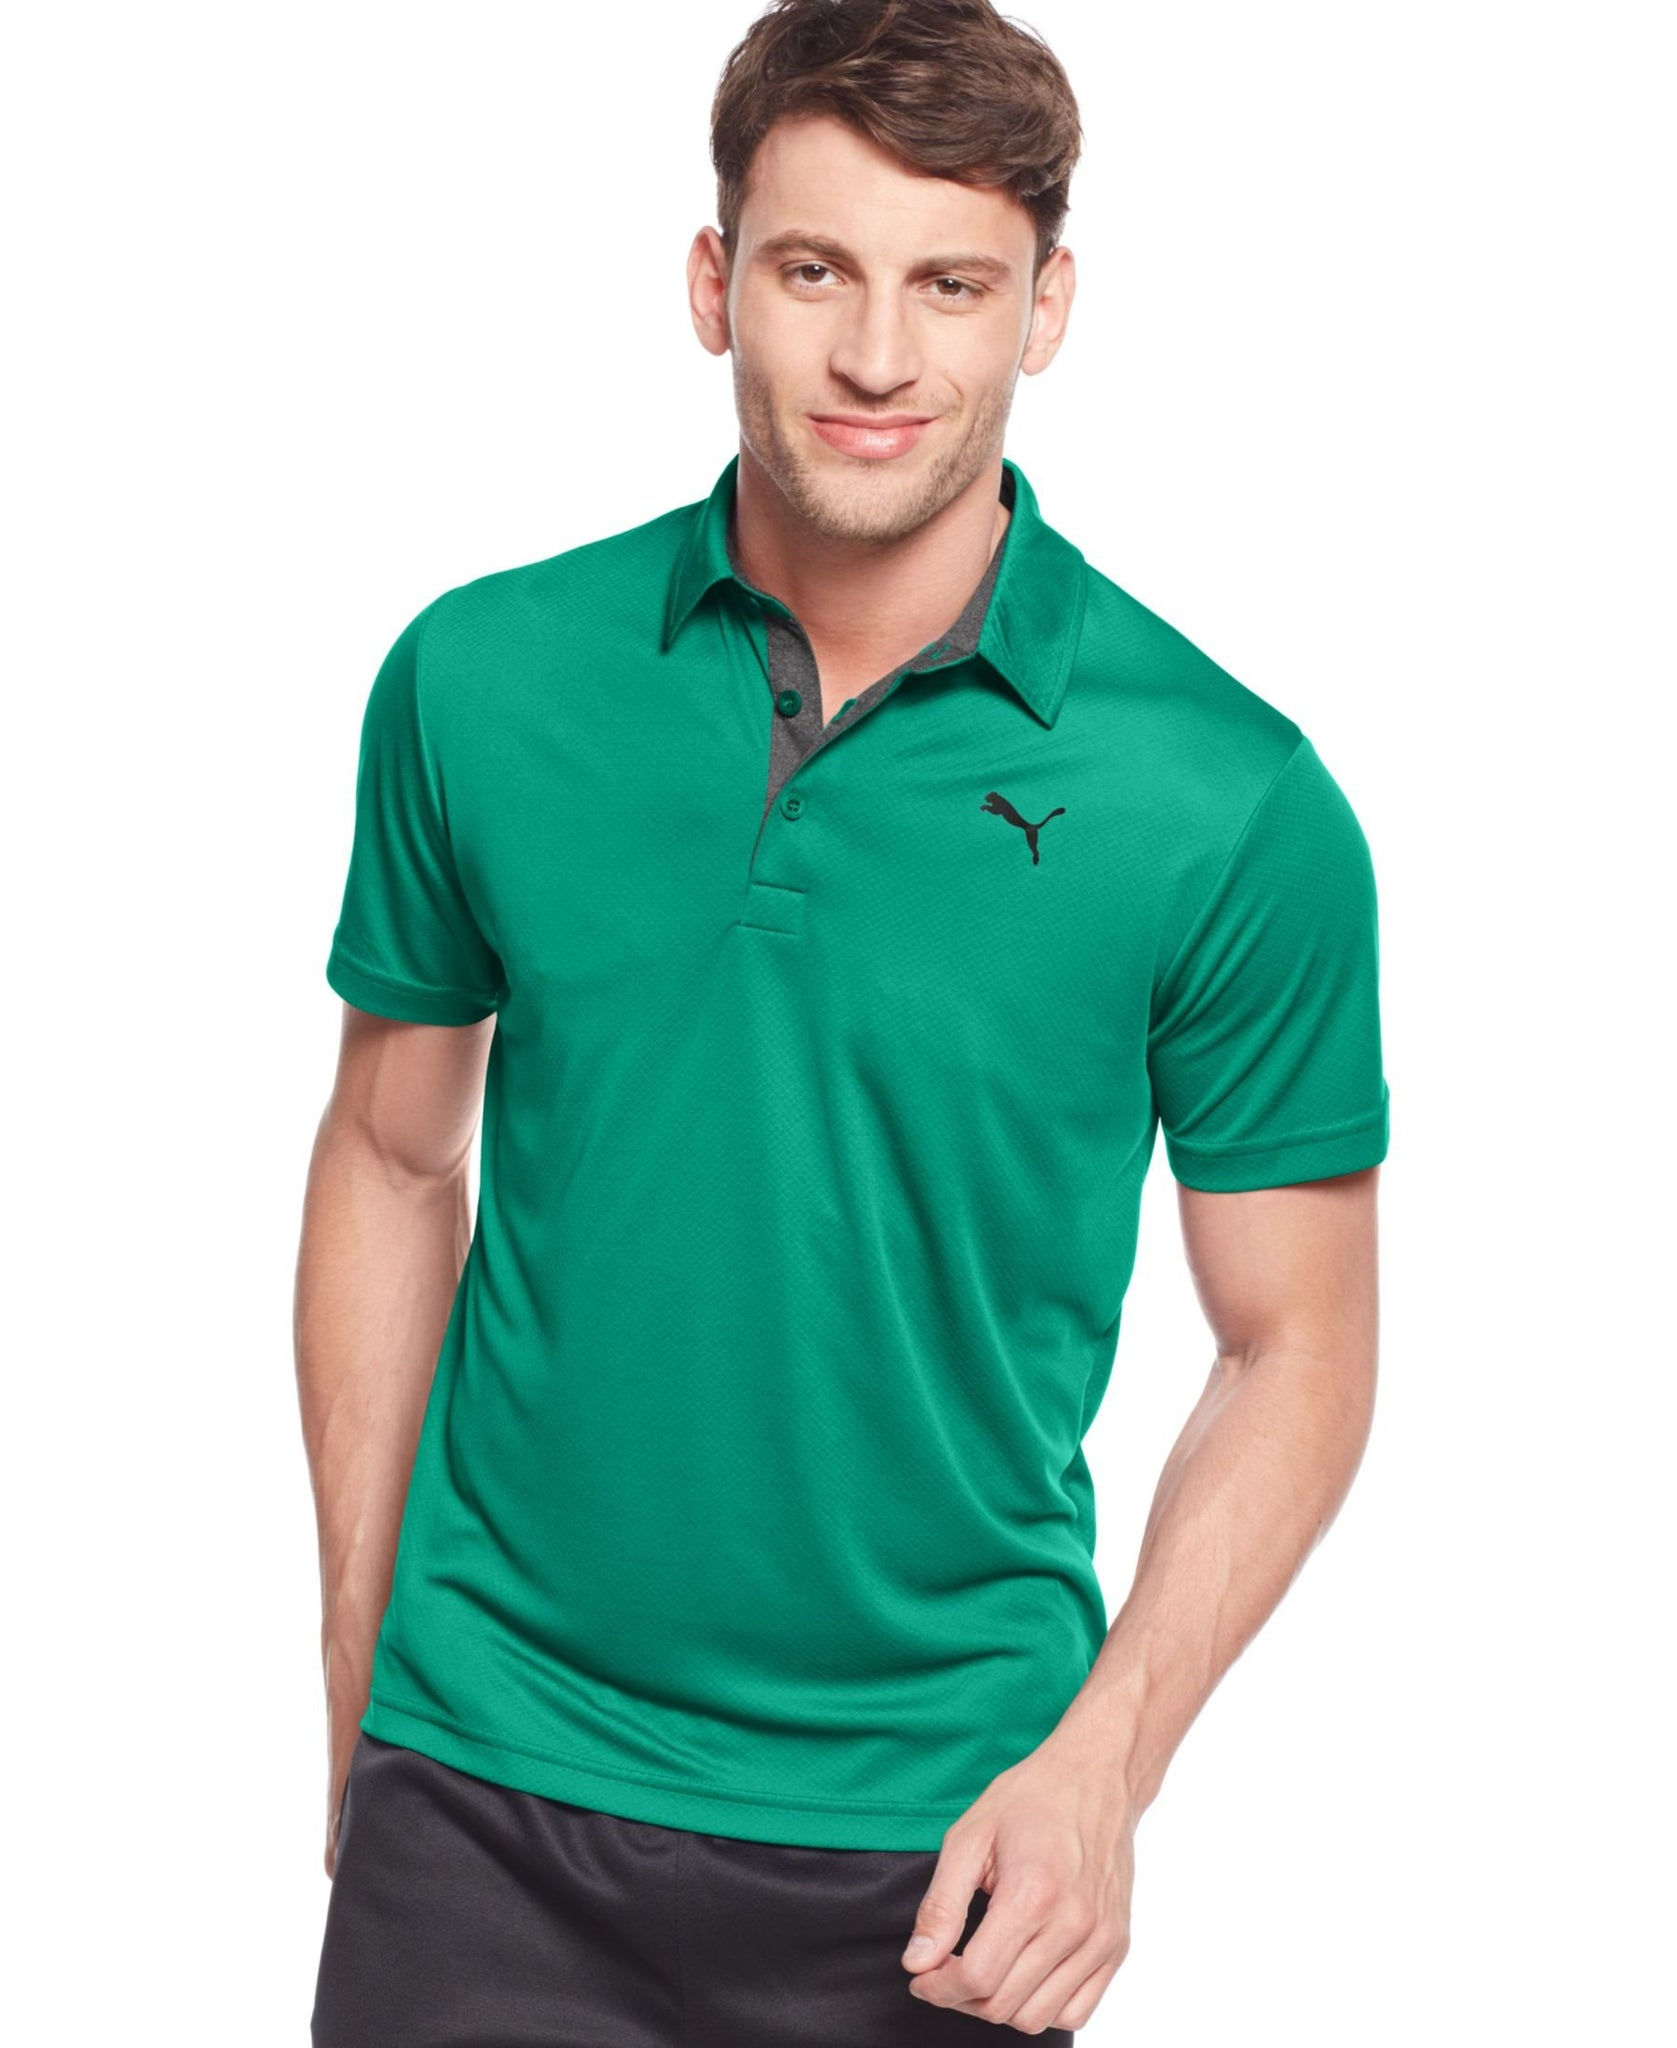 Puma Solid Performance Polo